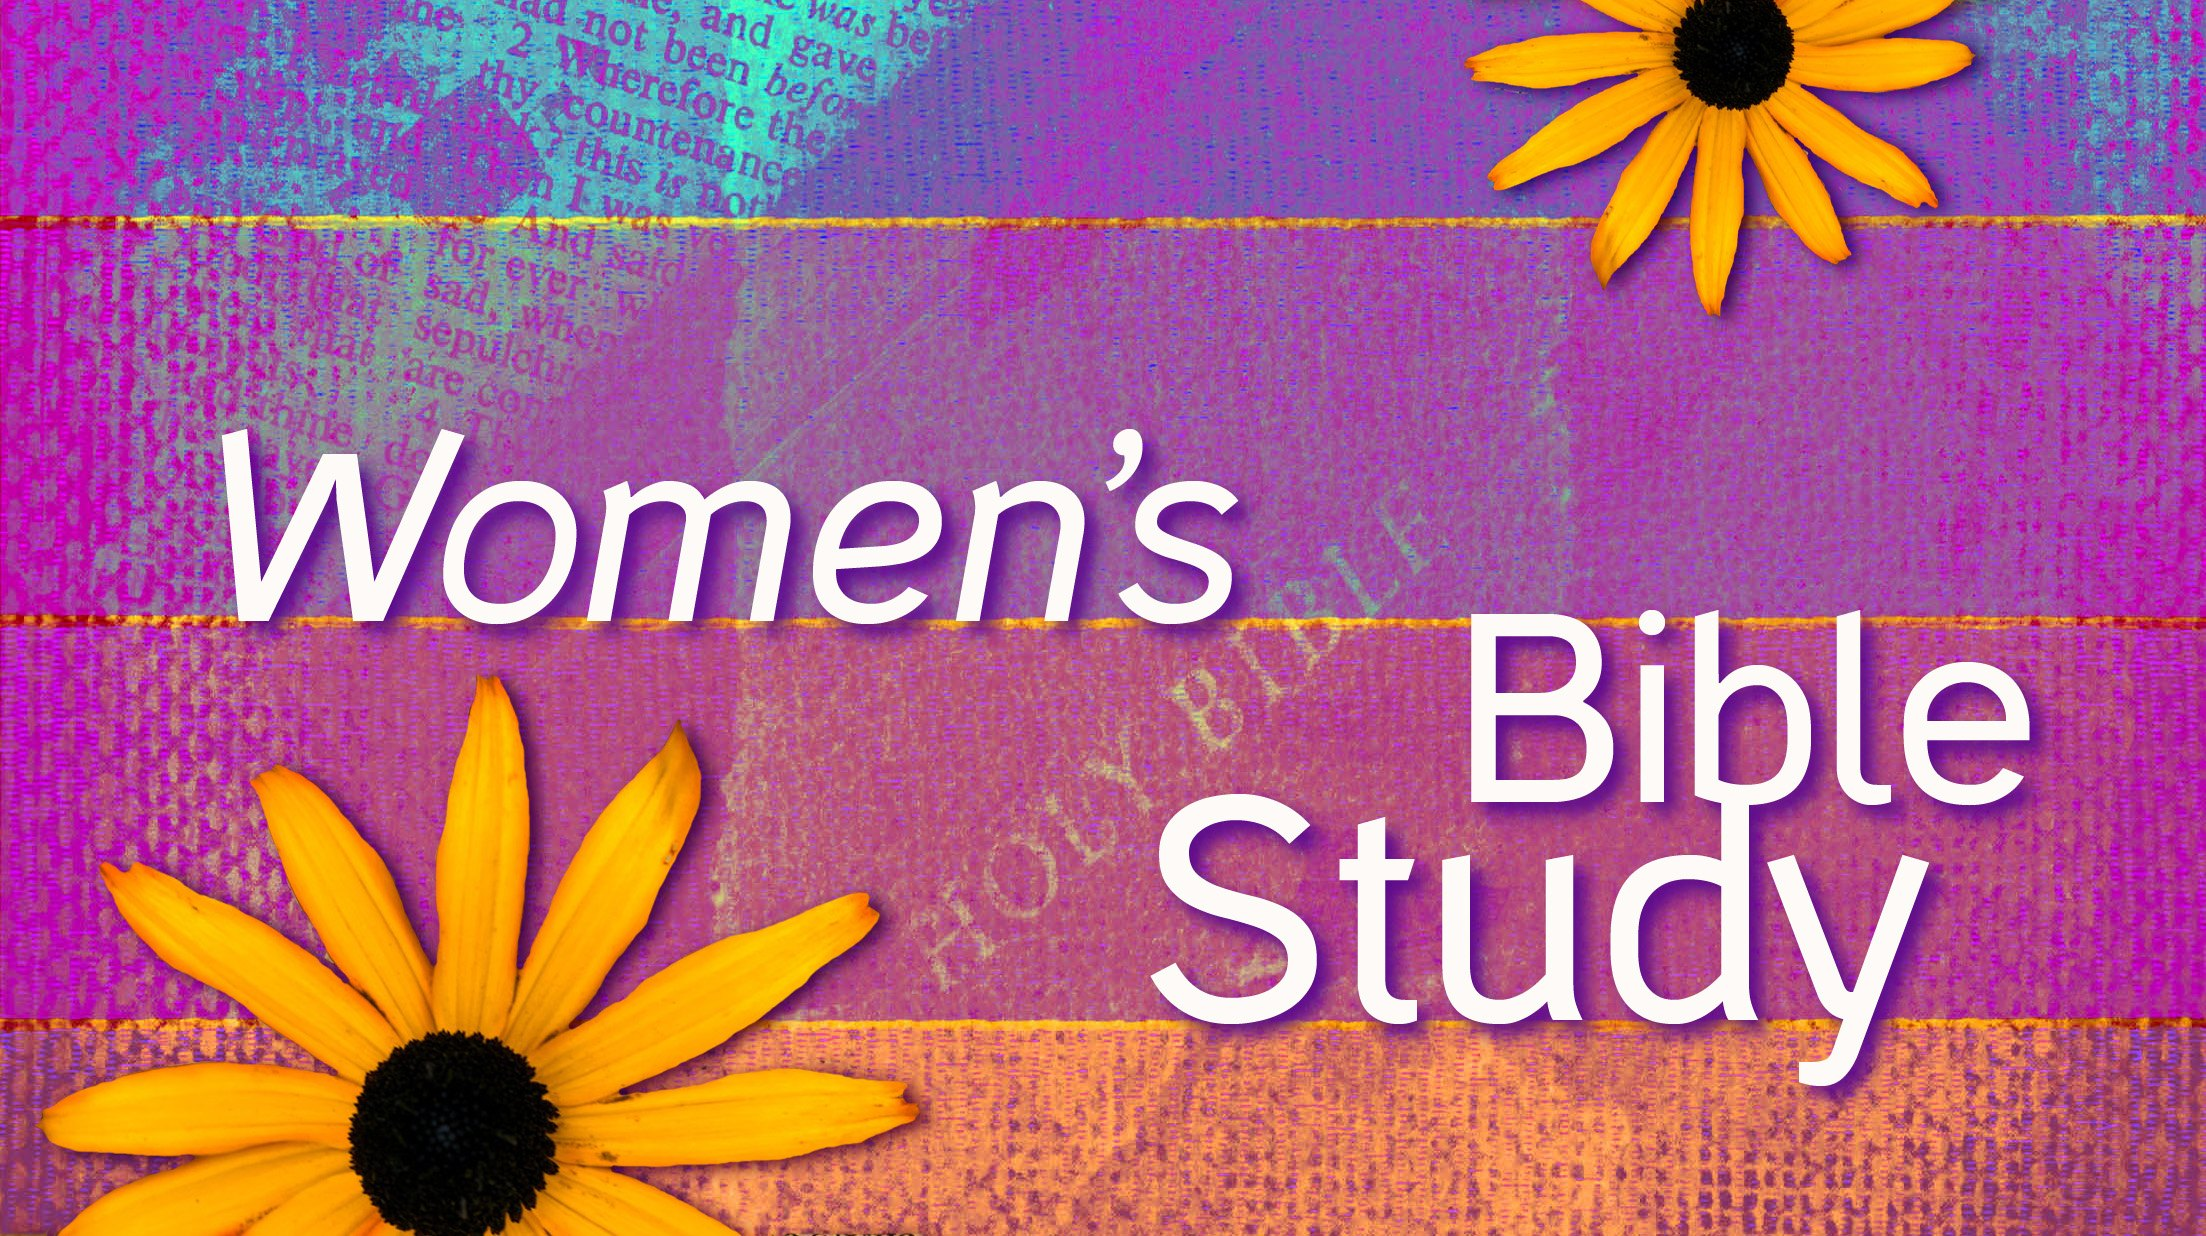 Love God Greatly - Free Online Bible Studies for Women